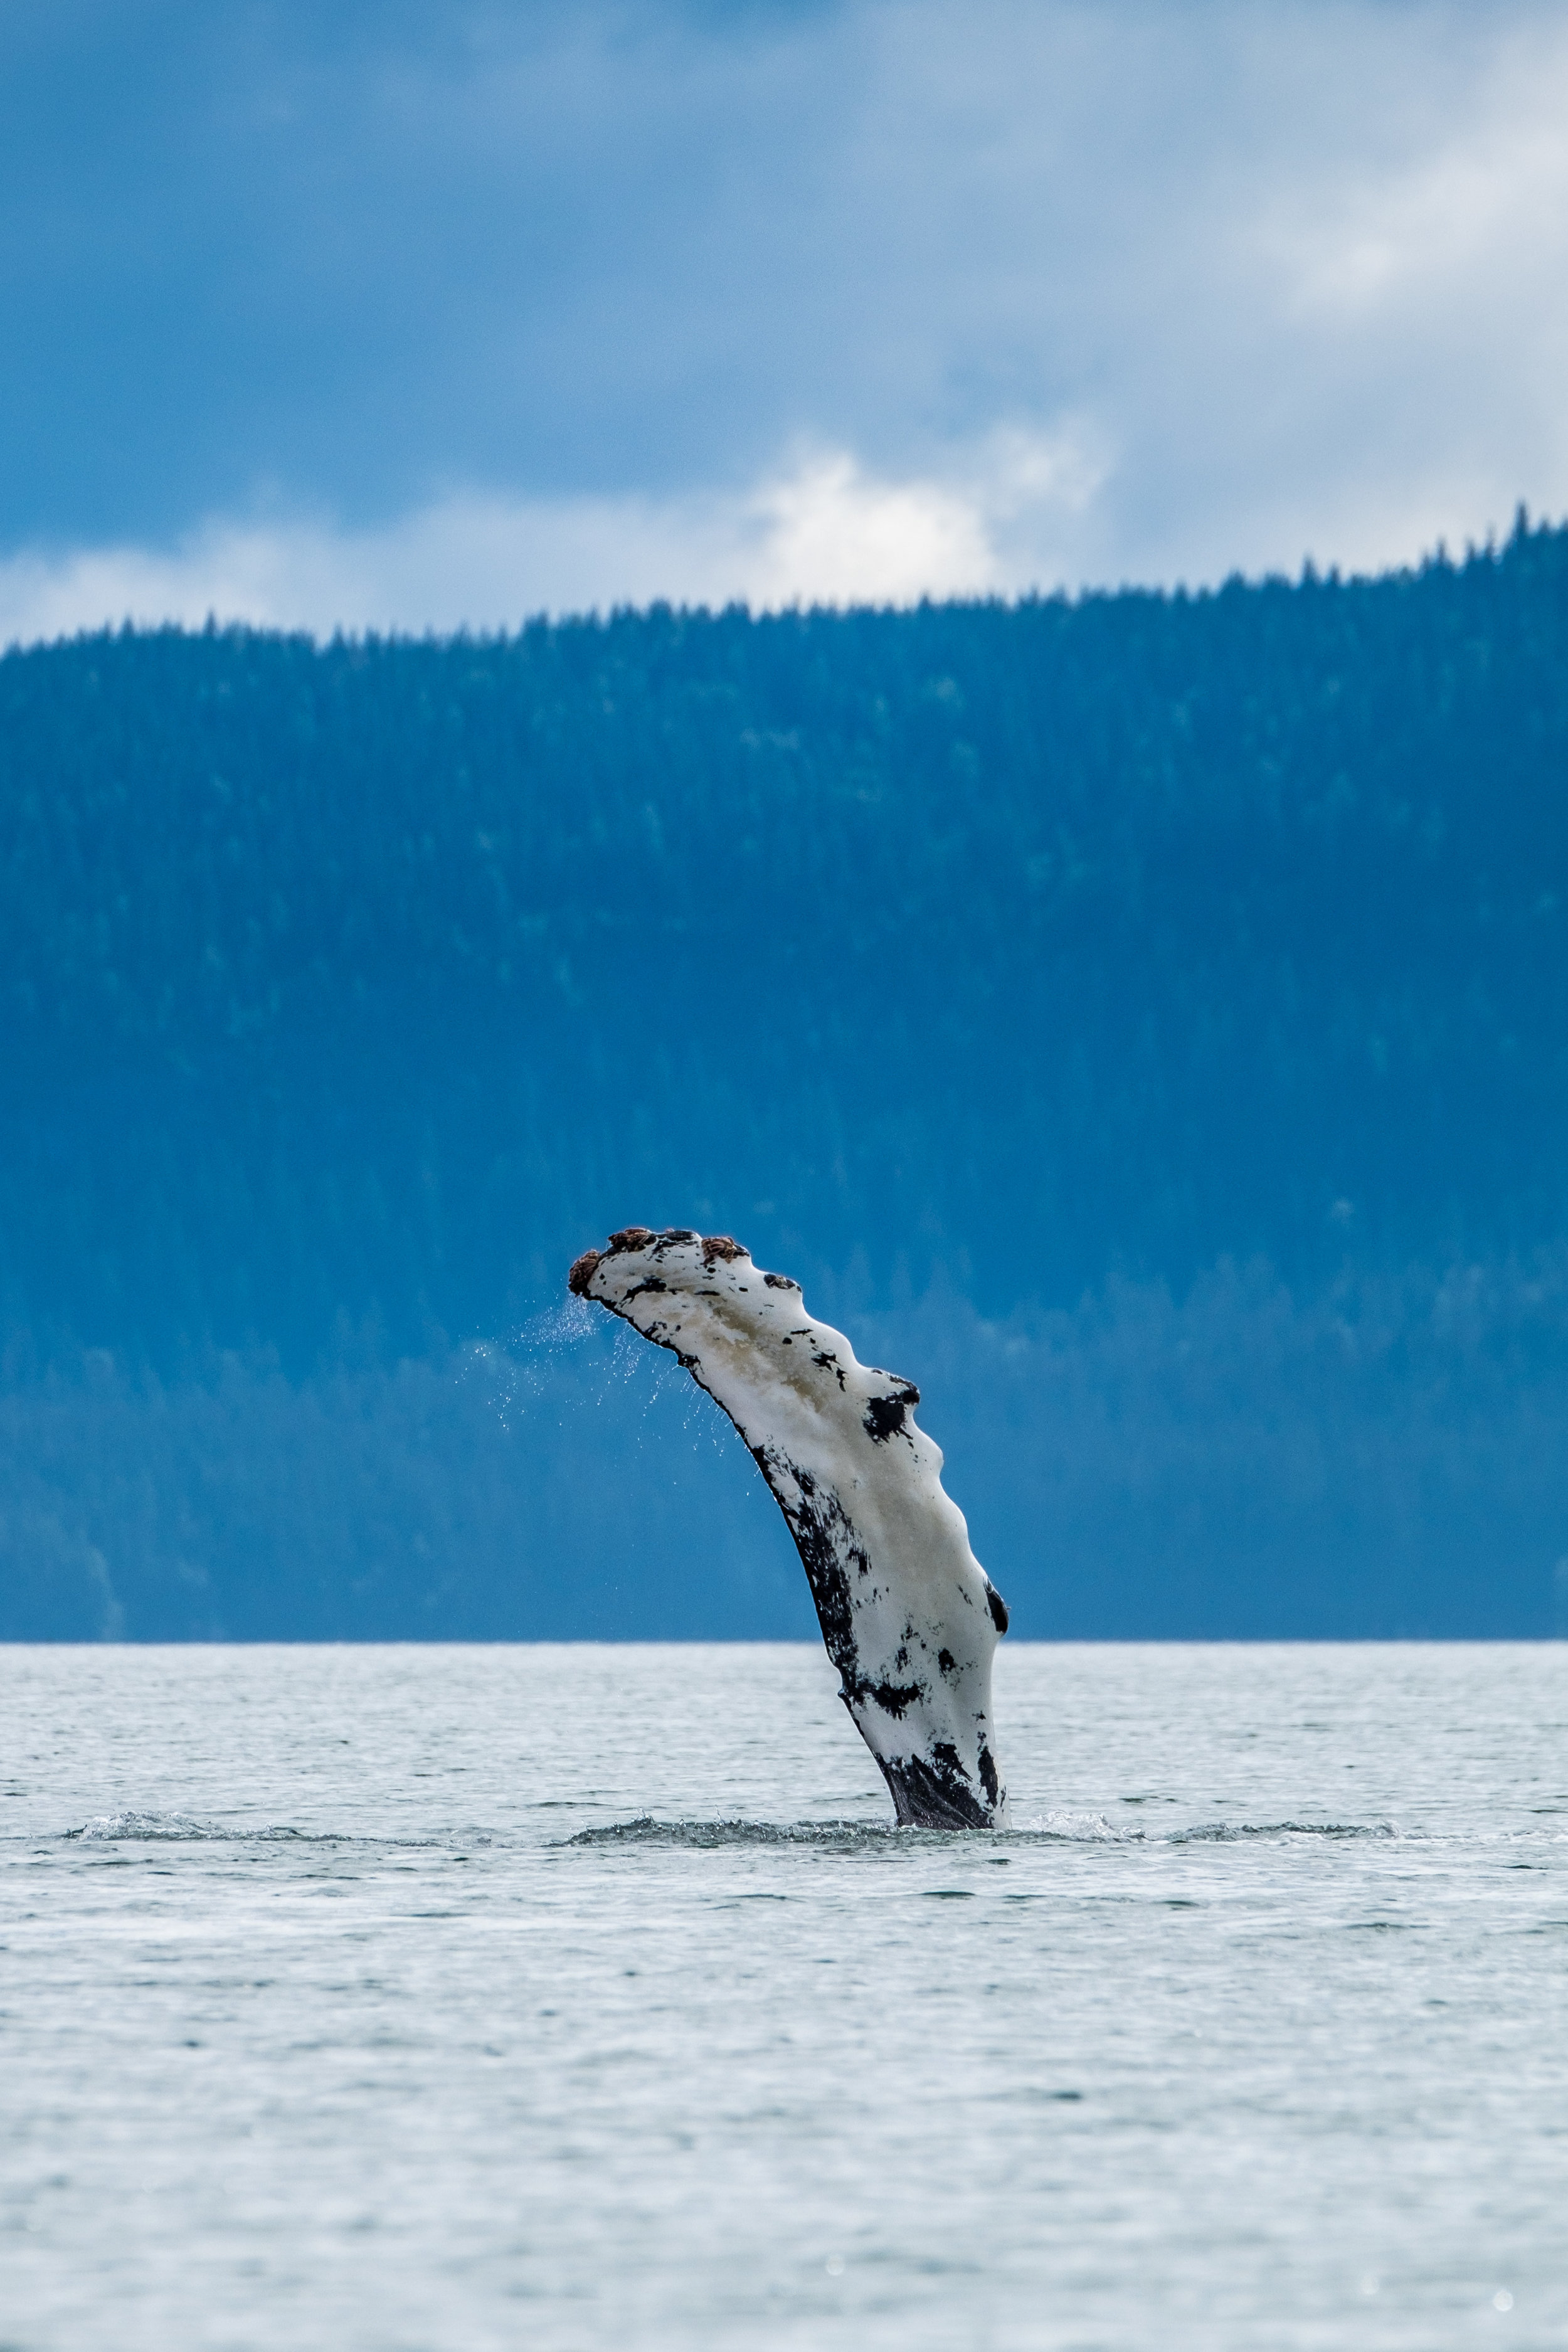 The Humpback whale shows itself elegantly on the water in Glacier Bay, Alaska.